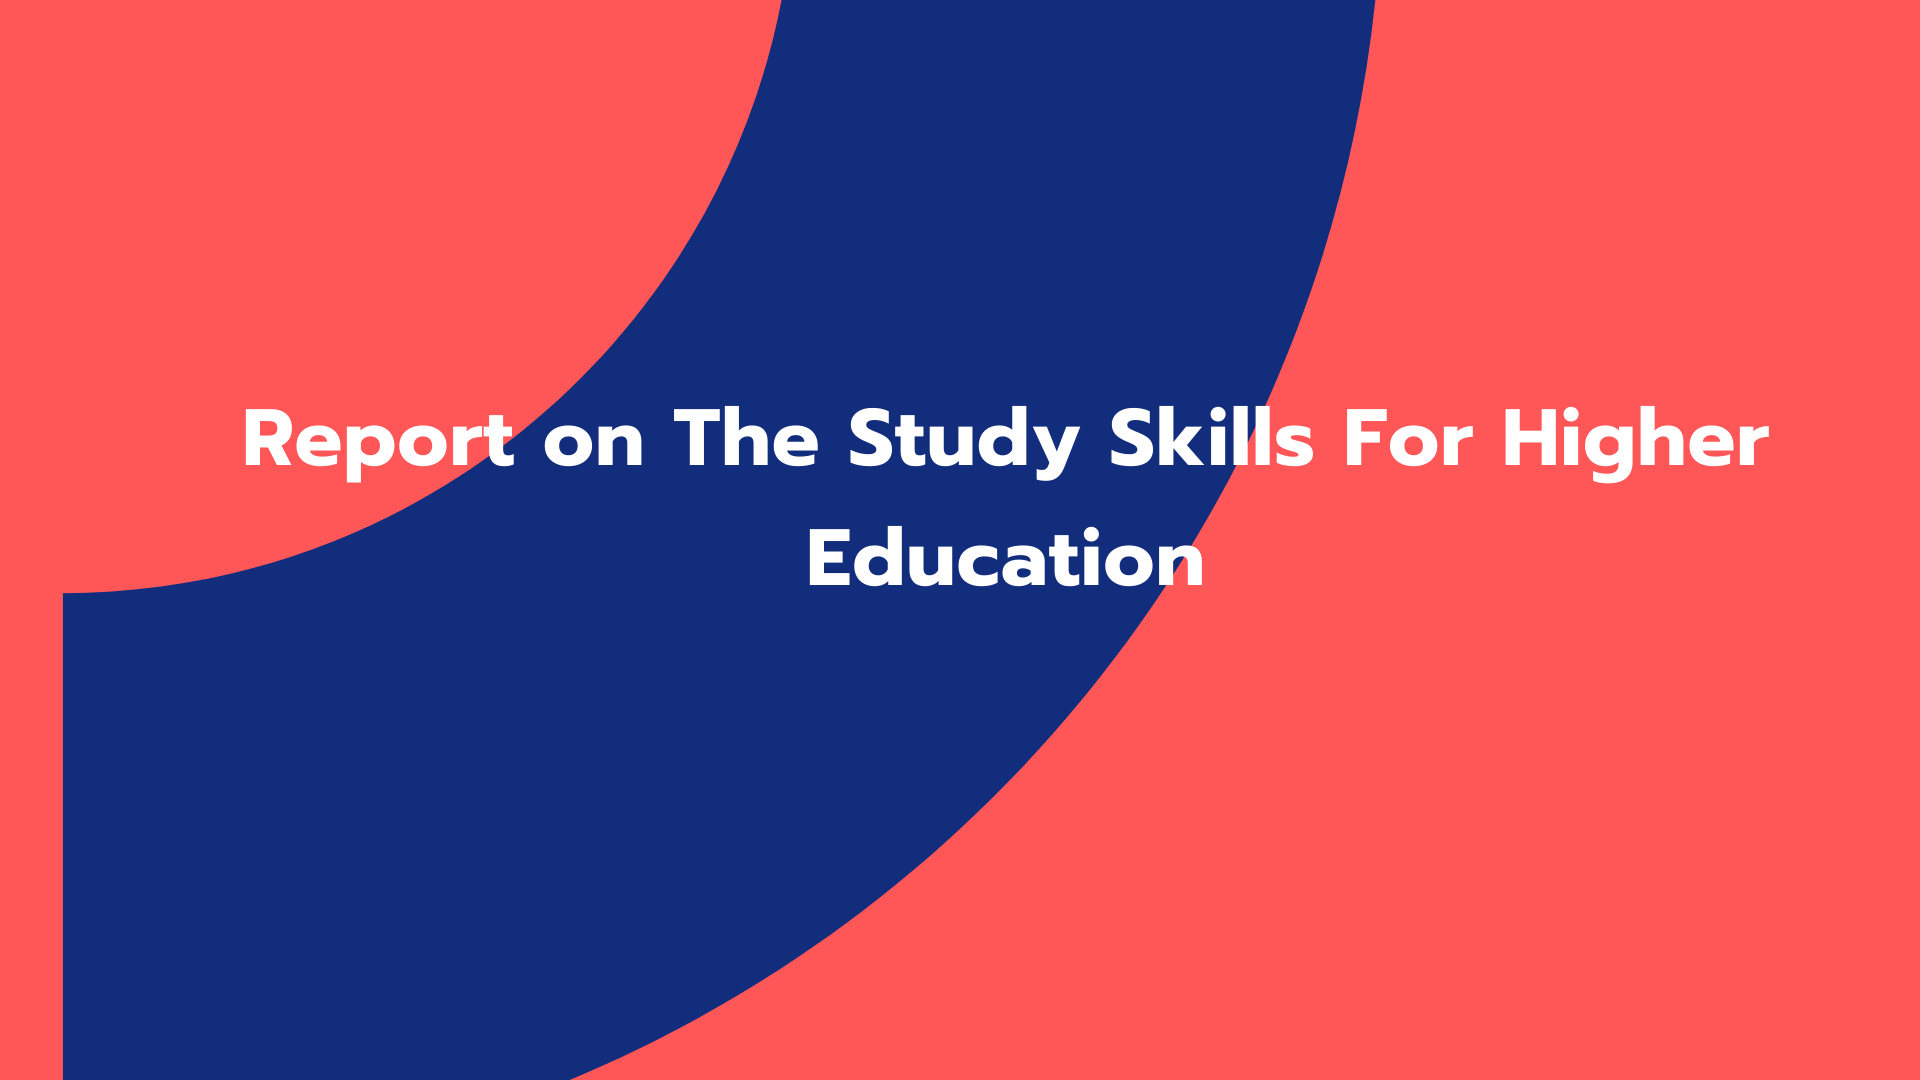 Report on The Study Skills For Higher Education